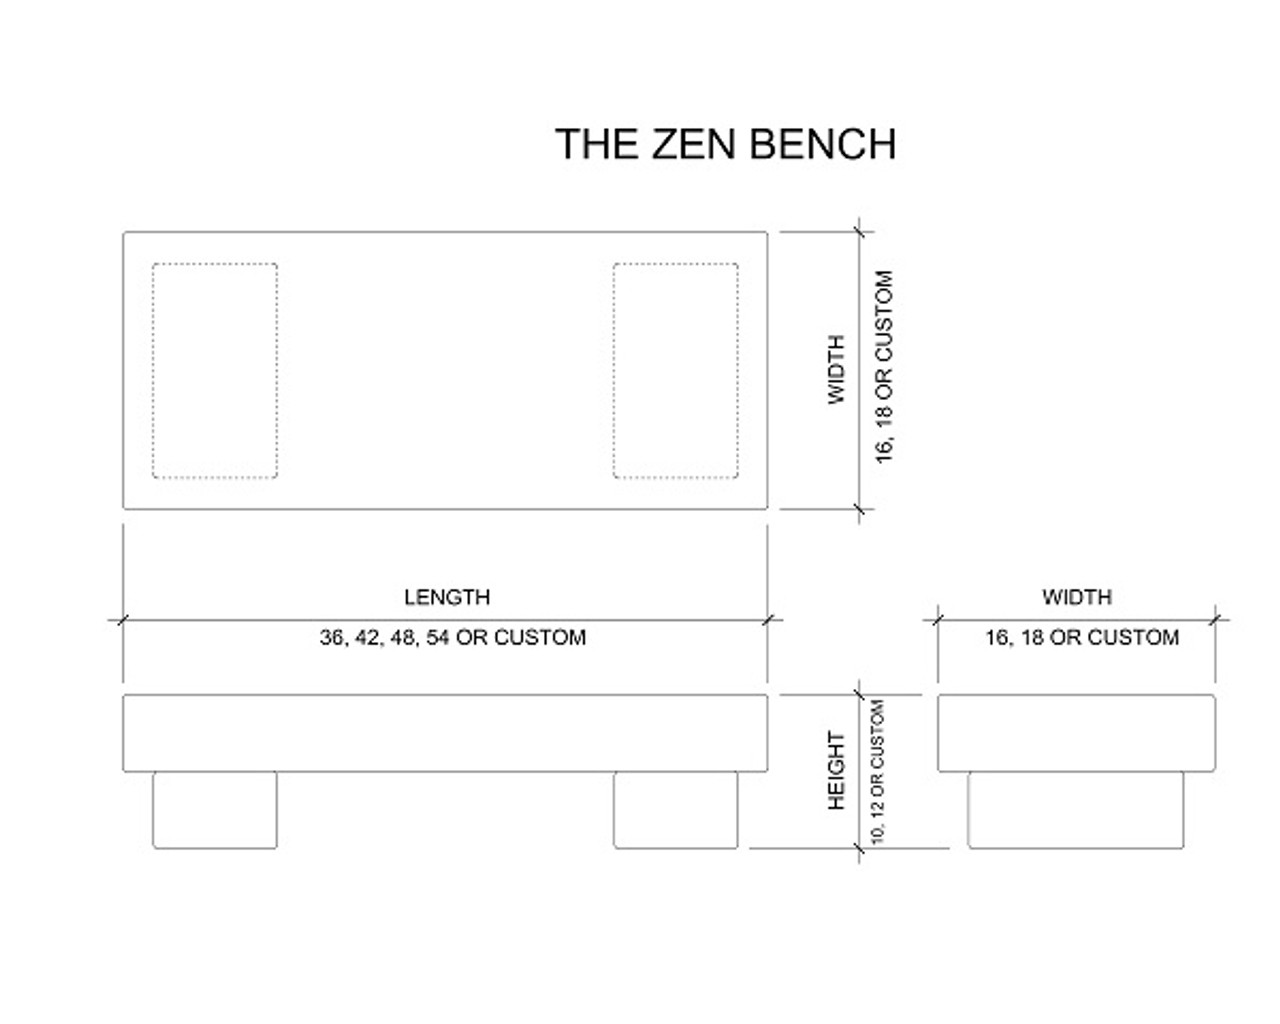 The Zen Bench drawing, standard and customer size, available in many different natural stone colors, made to order in the USA and shipped nationwide.